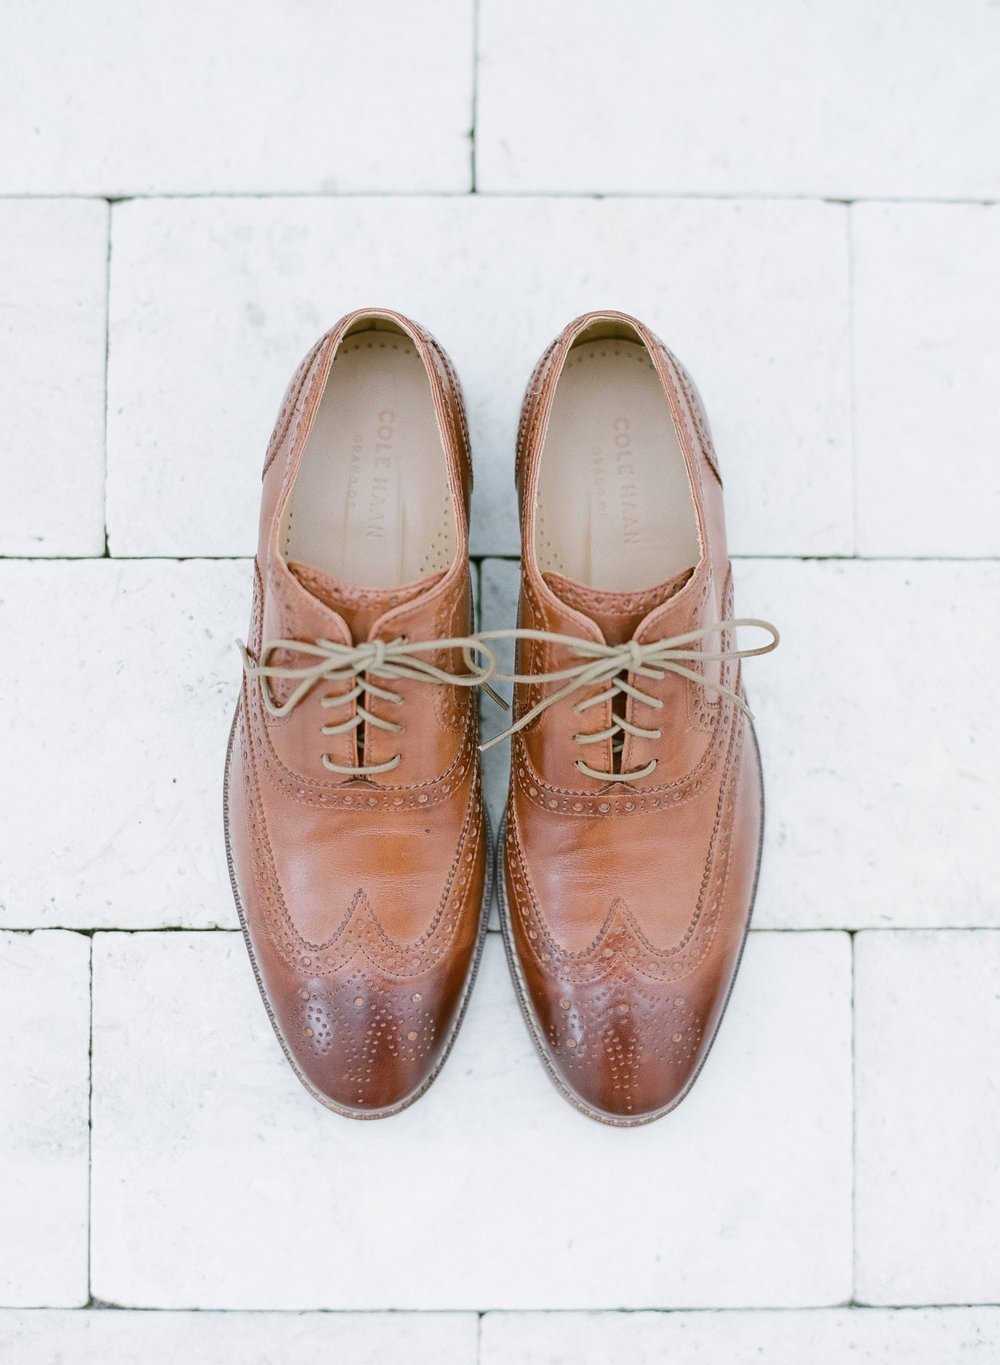 Jessie Barksdale Photography_cole haan_groom fashion style shoes